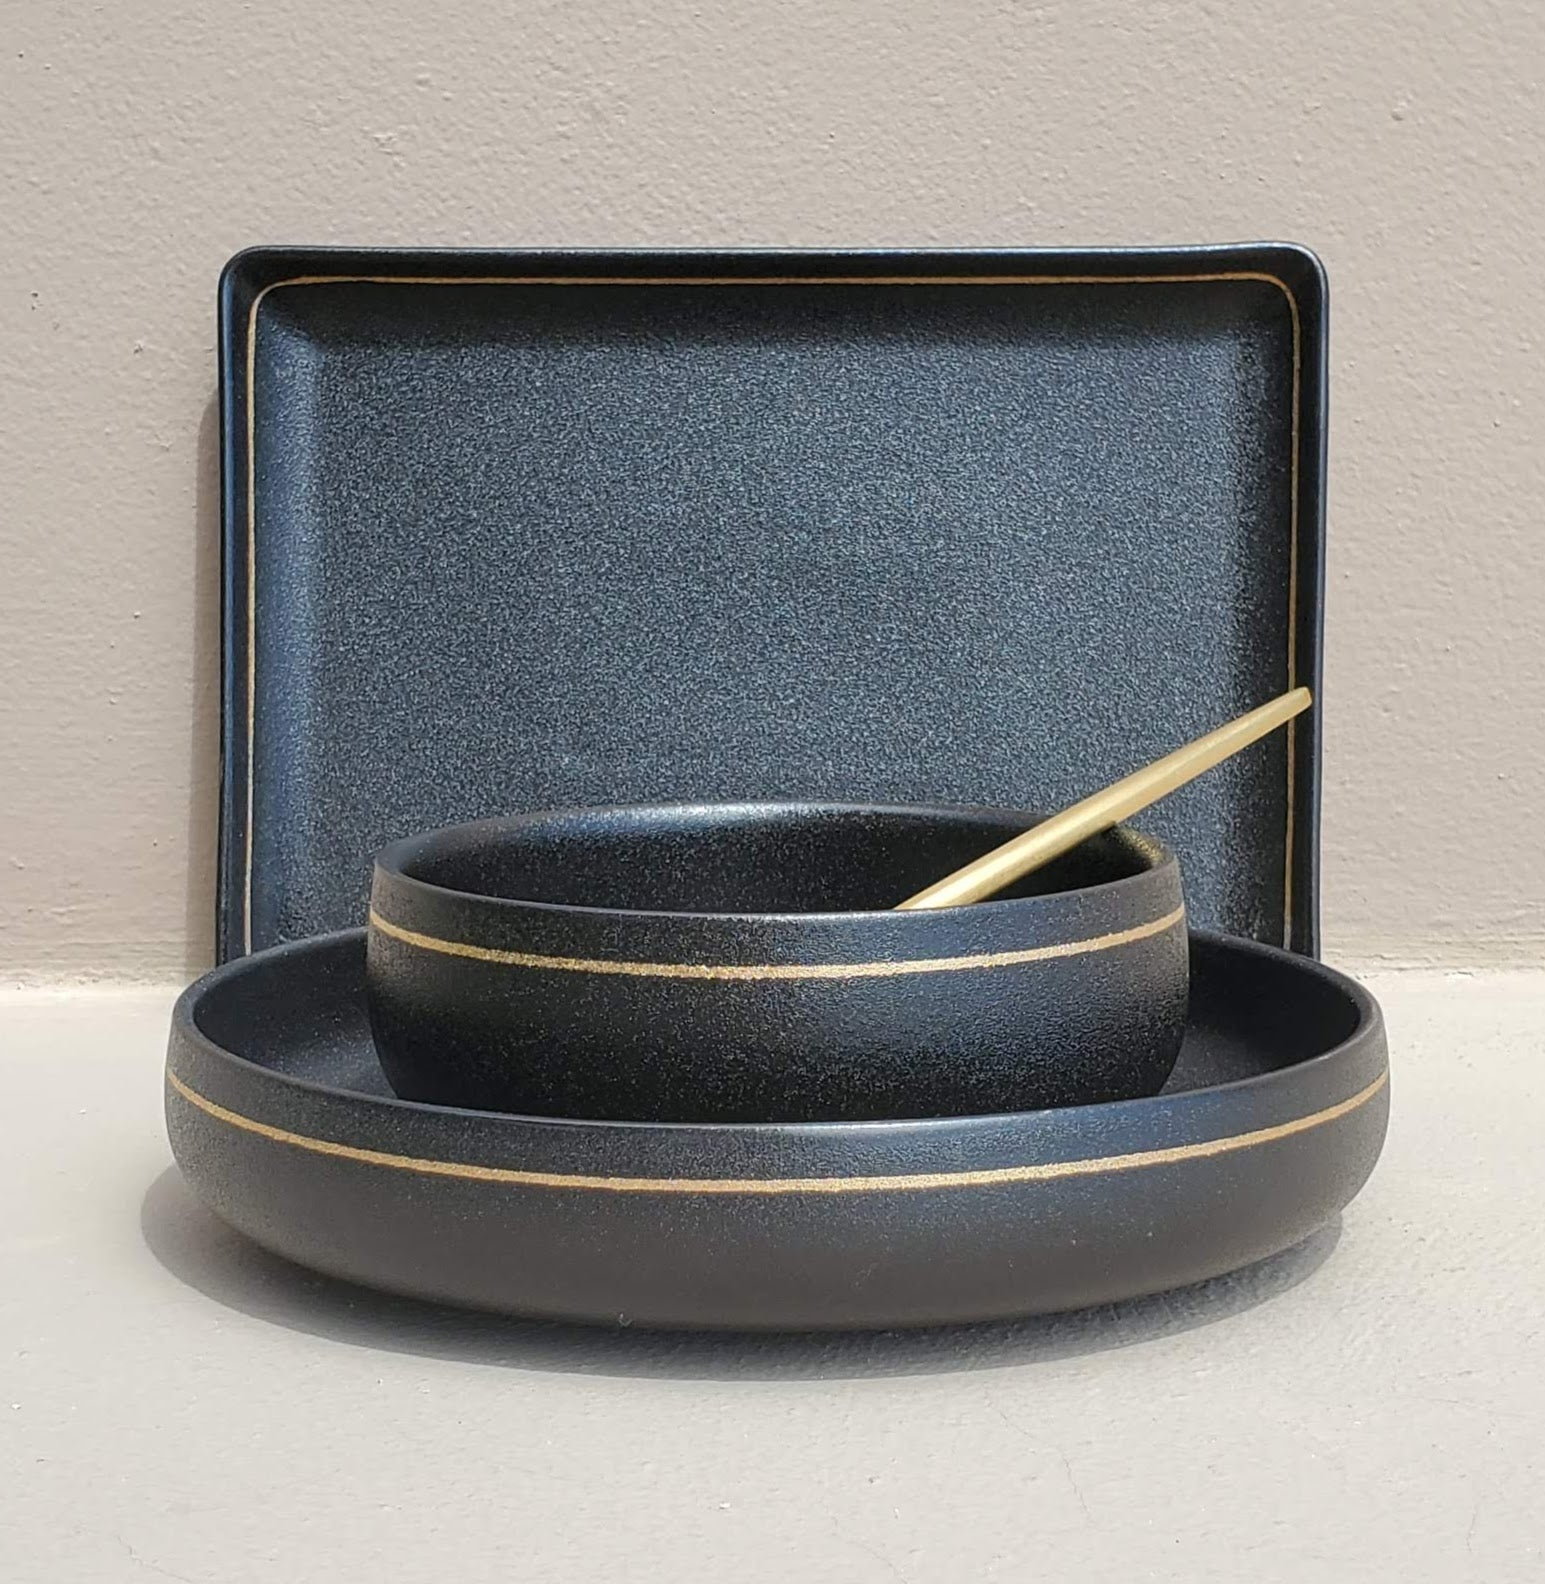 unique black and gold dinner set dinnerware set wedding gift housewarming gift gifts for him